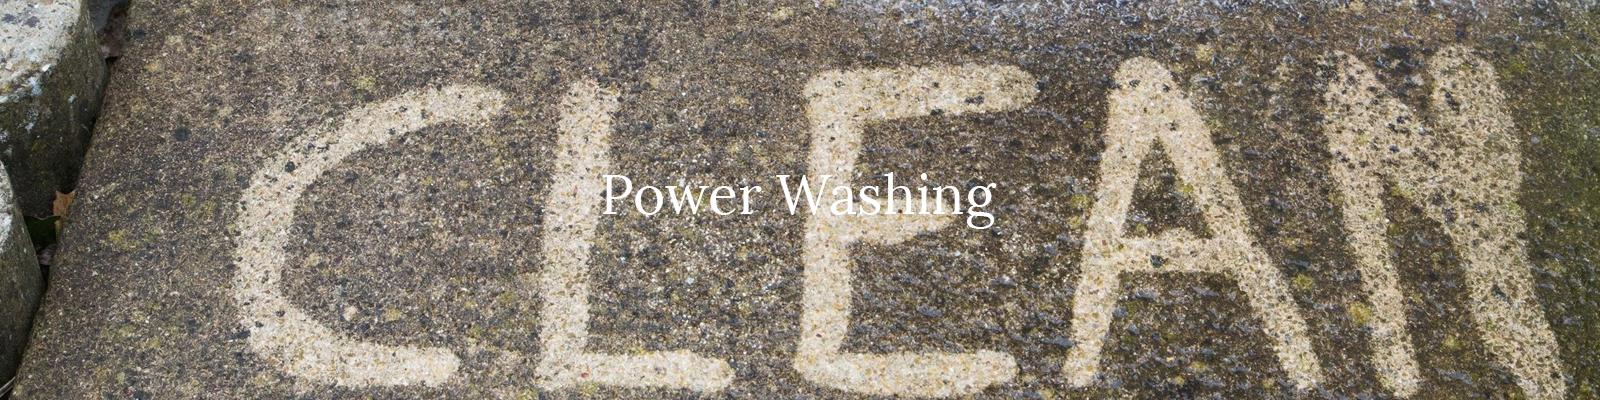 Power washing in Macomb - bricks, cement, siding and more